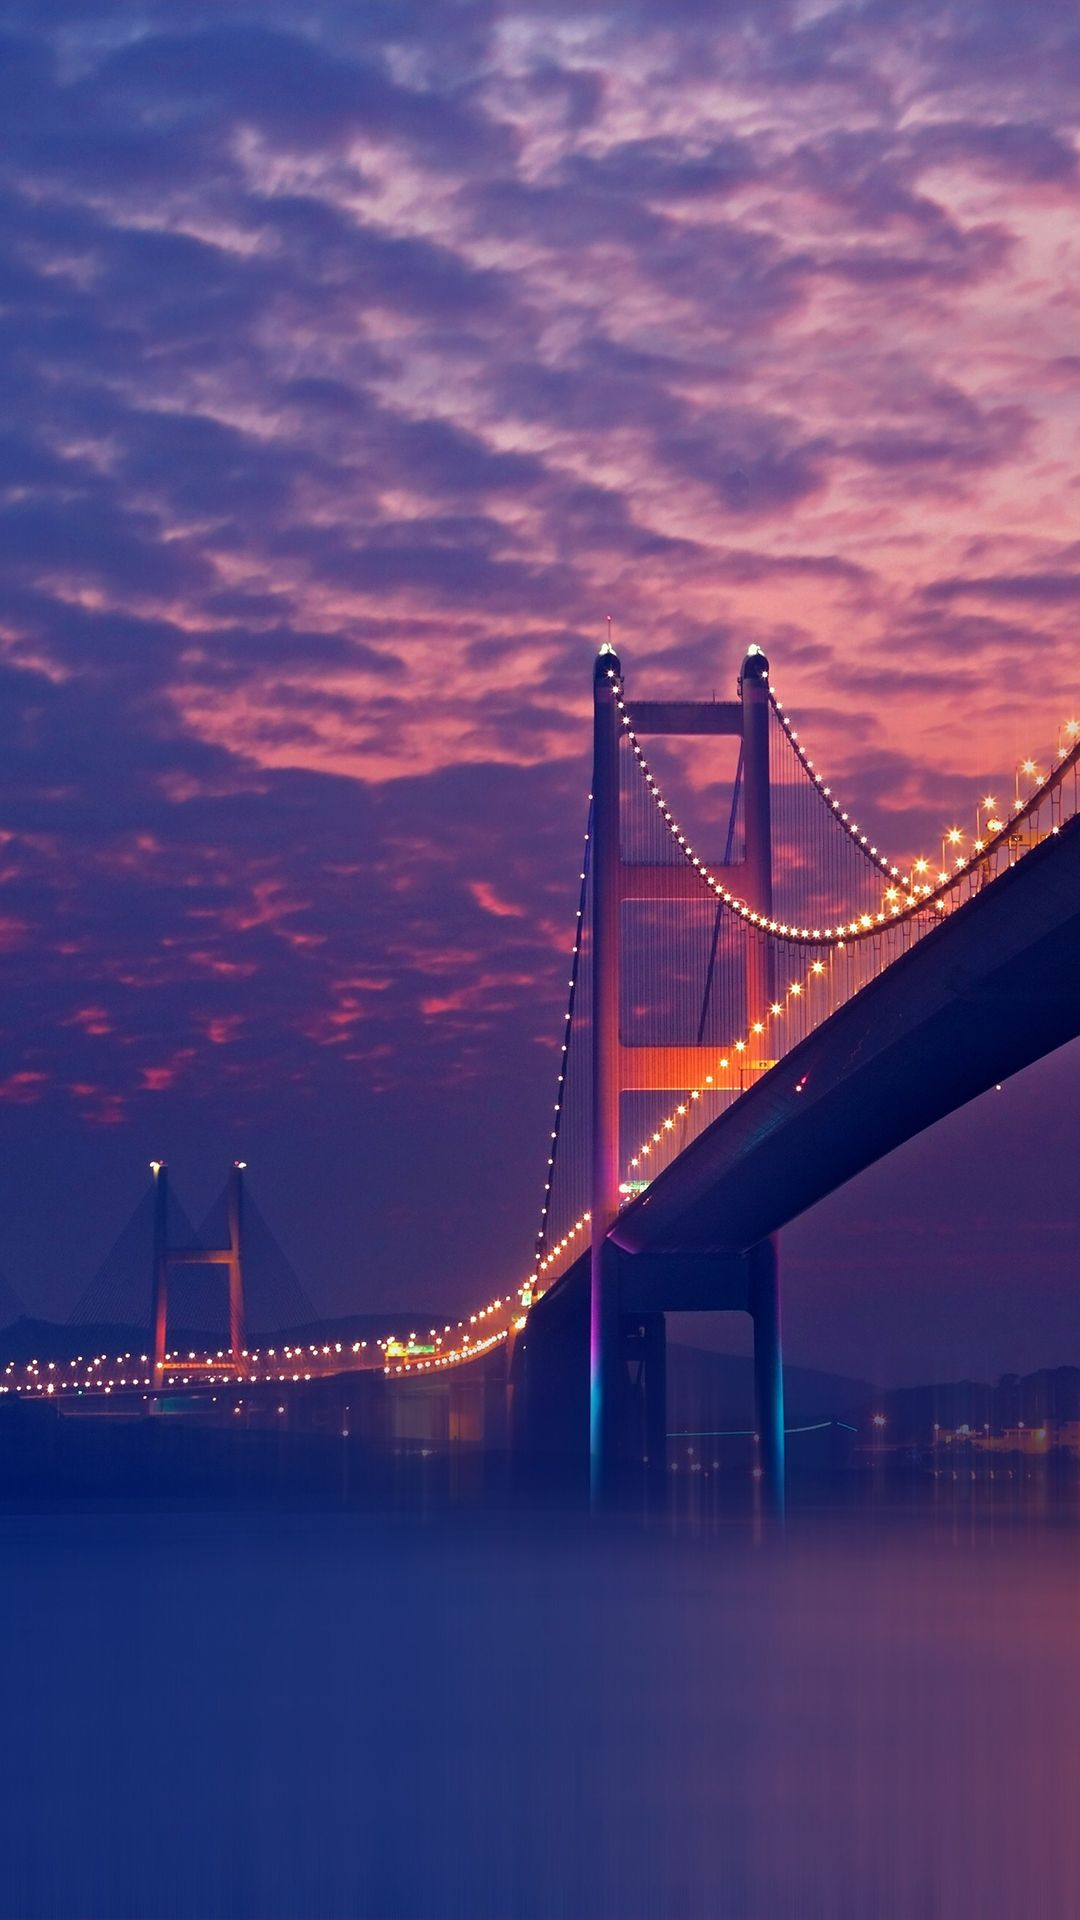 purple night bridge lights iphone 6+ hd wallpaper | iphone